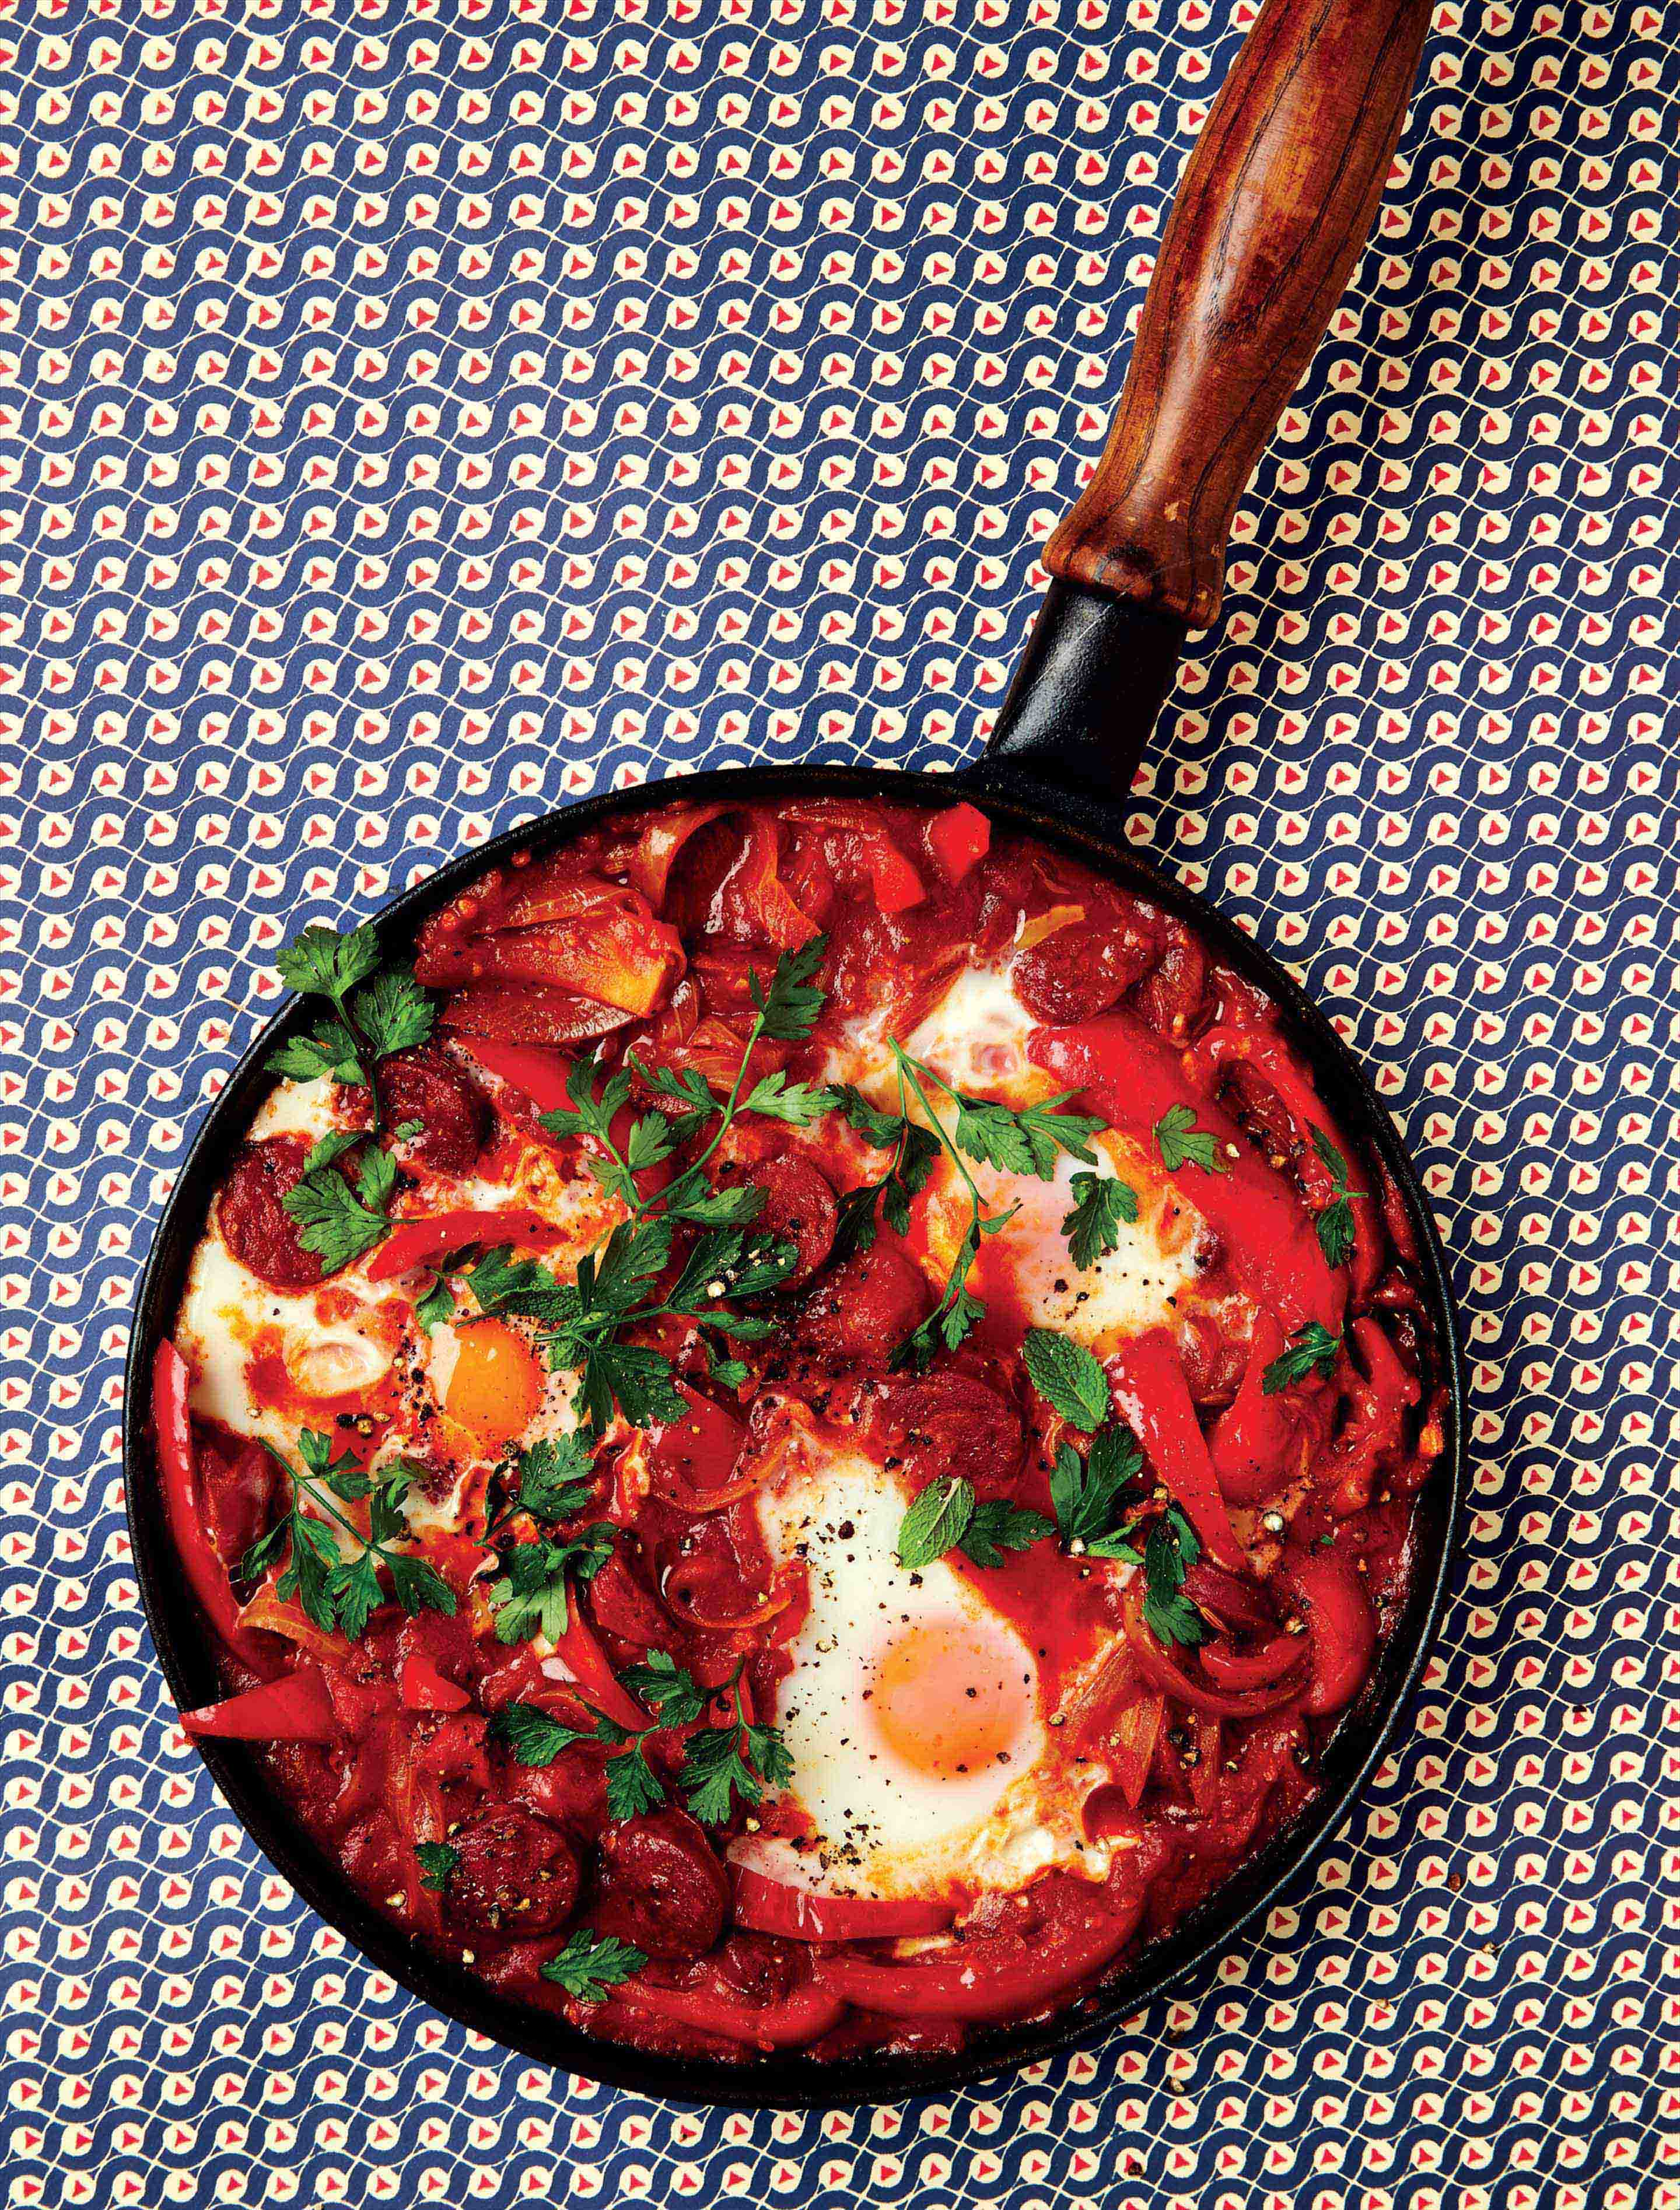 Red pepper baked eggs